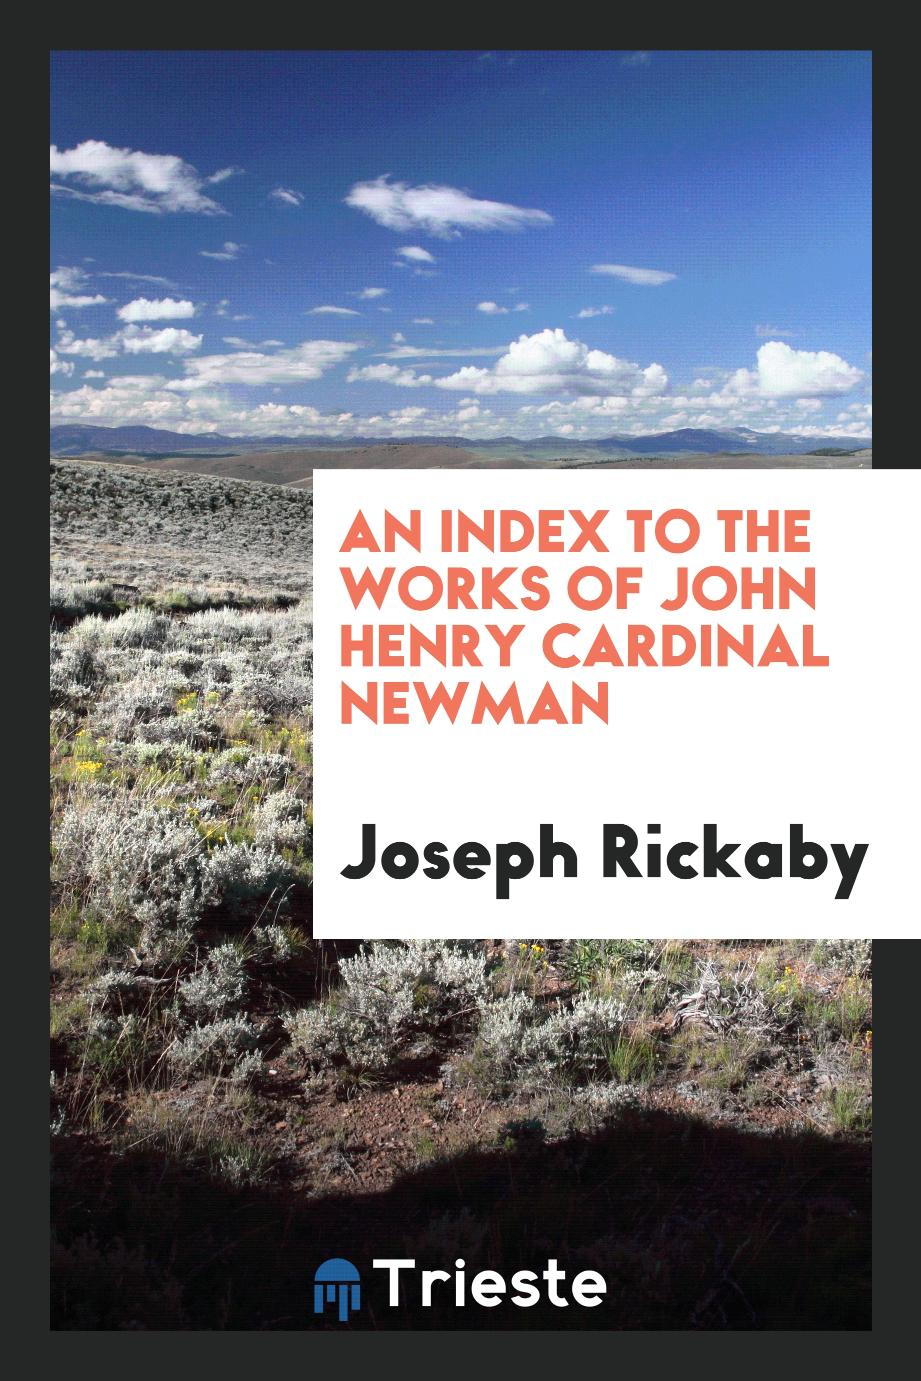 An Index to the Works of John Henry Cardinal Newman